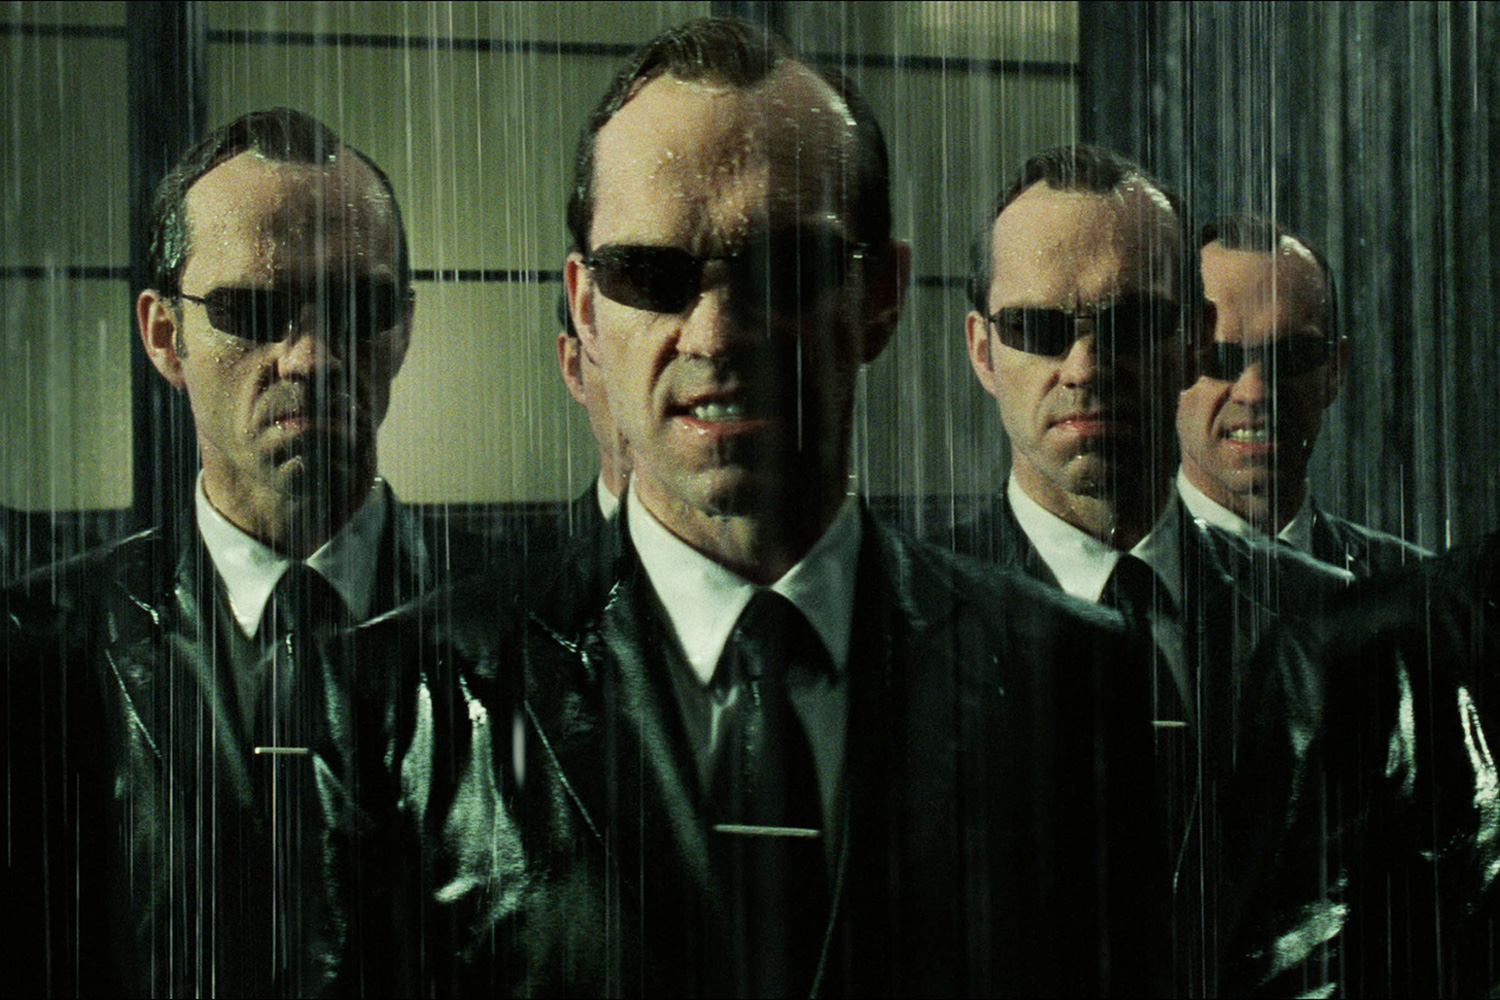 'The Matrix' 4 Won't Have Hugo Weaving as Agent Smith